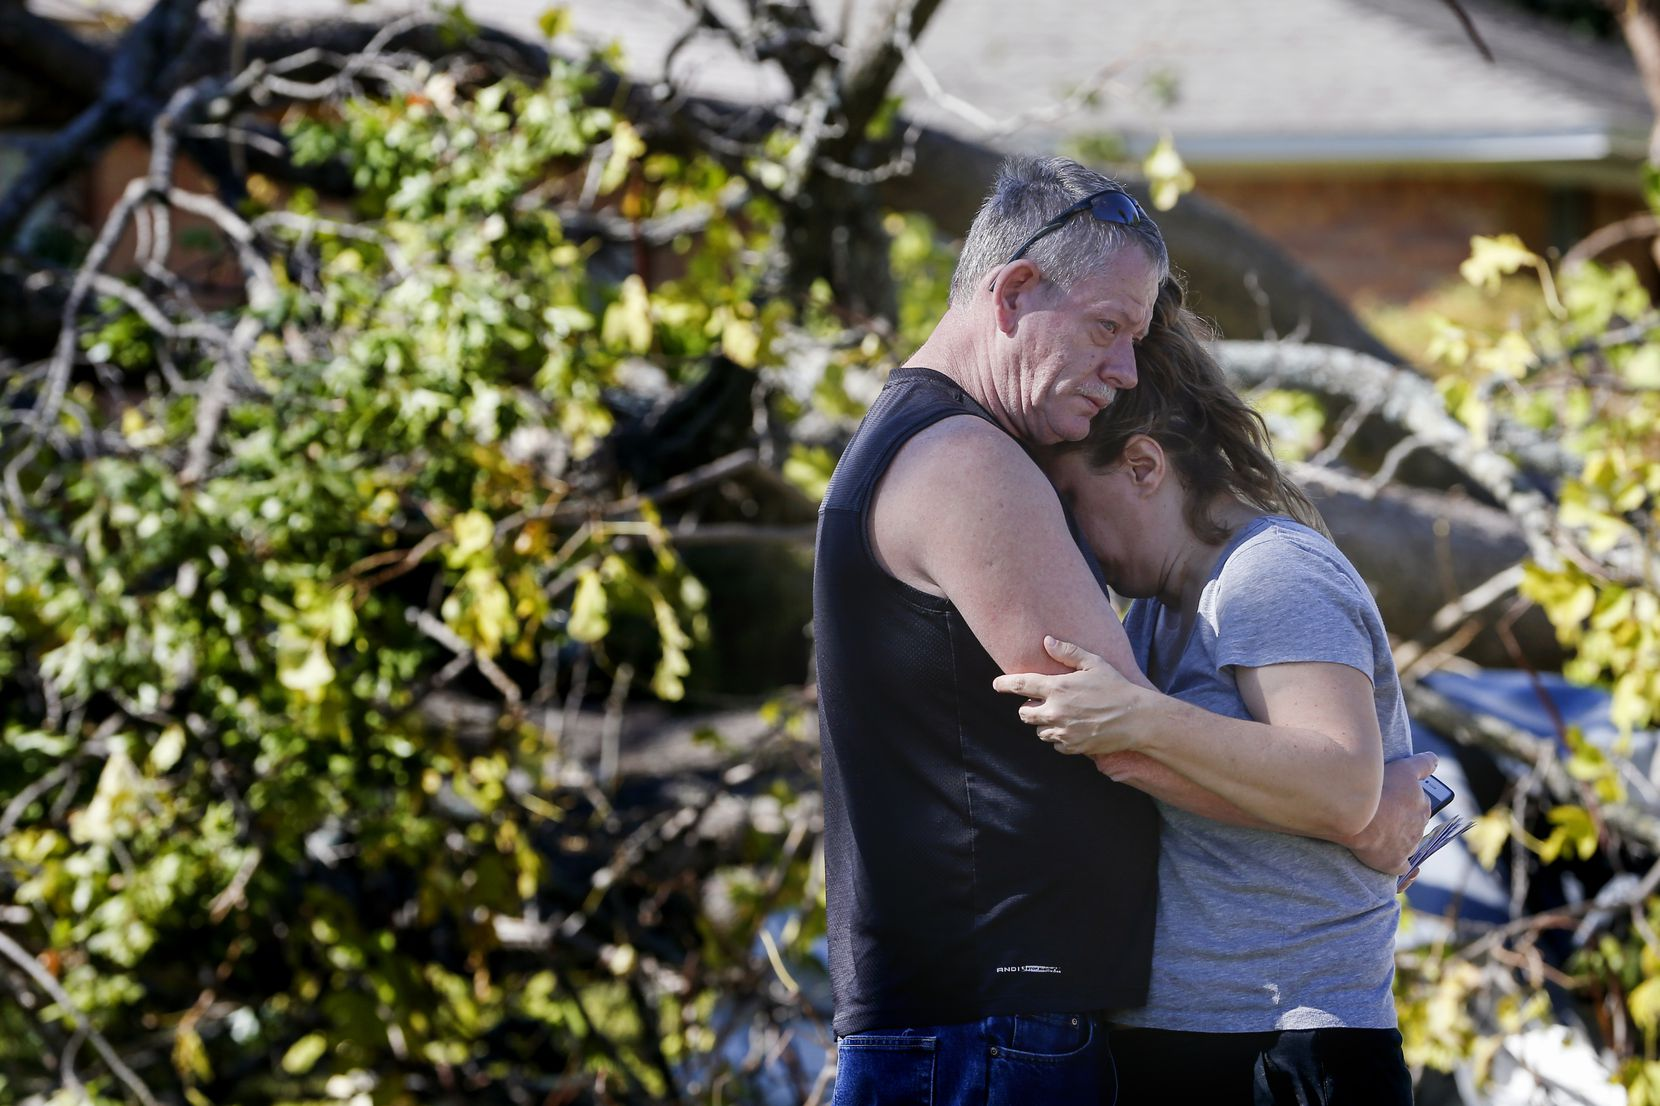 Tommy Edmonds, left, embraces his wife, Heidi Edmonds outside of their home, which was destroyed when a tornado hit the night before, on Westway Avenue in Garland, Texas, on Sunday, Oct. 21, 2019. (Ryan Michalesko/The Dallas Morning News)